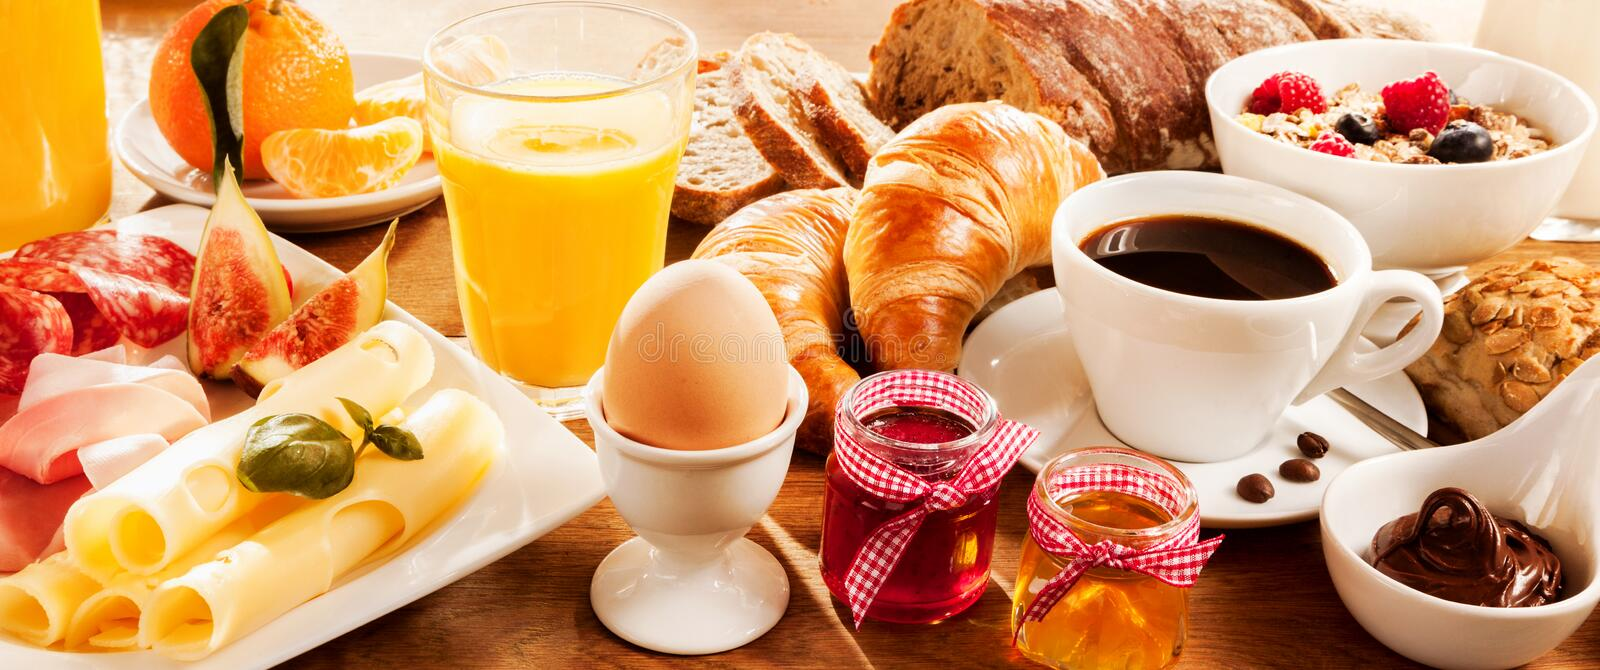 Breakfast feast on table. Breakfast feast with egg, meat, bread, coffee and juice royalty free stock image